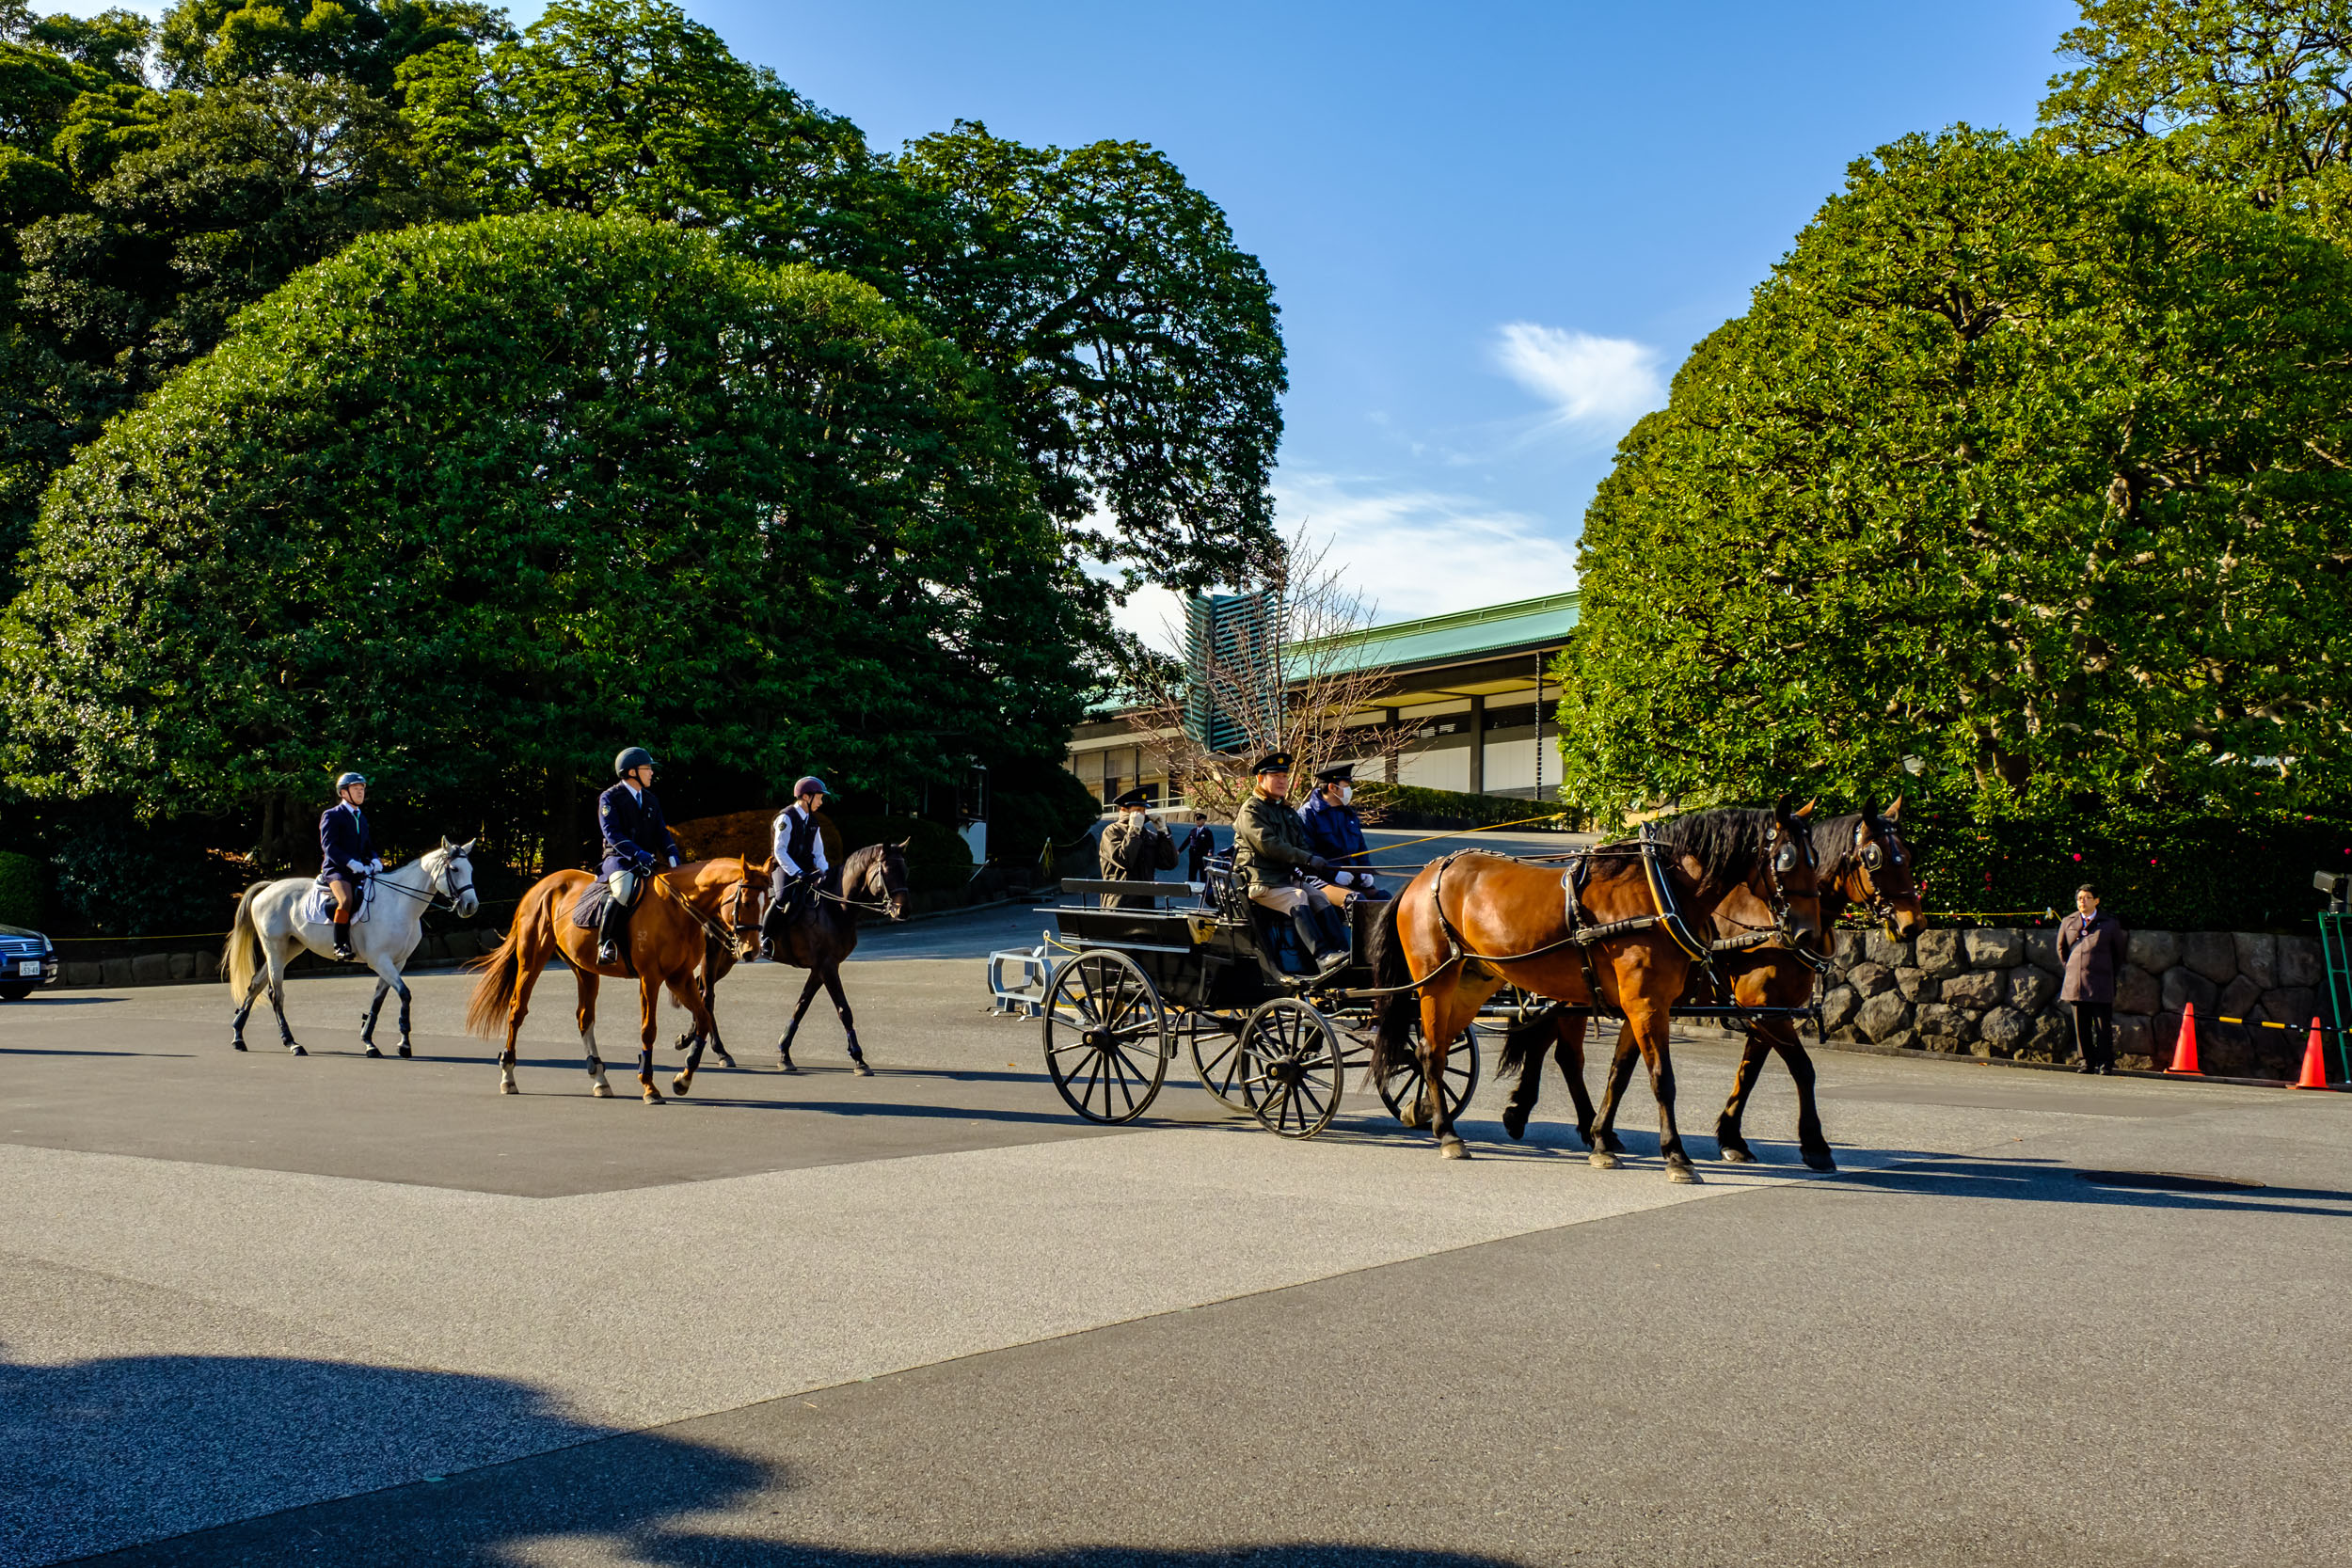 Horses and carriage during training, passing in front of Chowaden Hall. A very rare sight for most people.